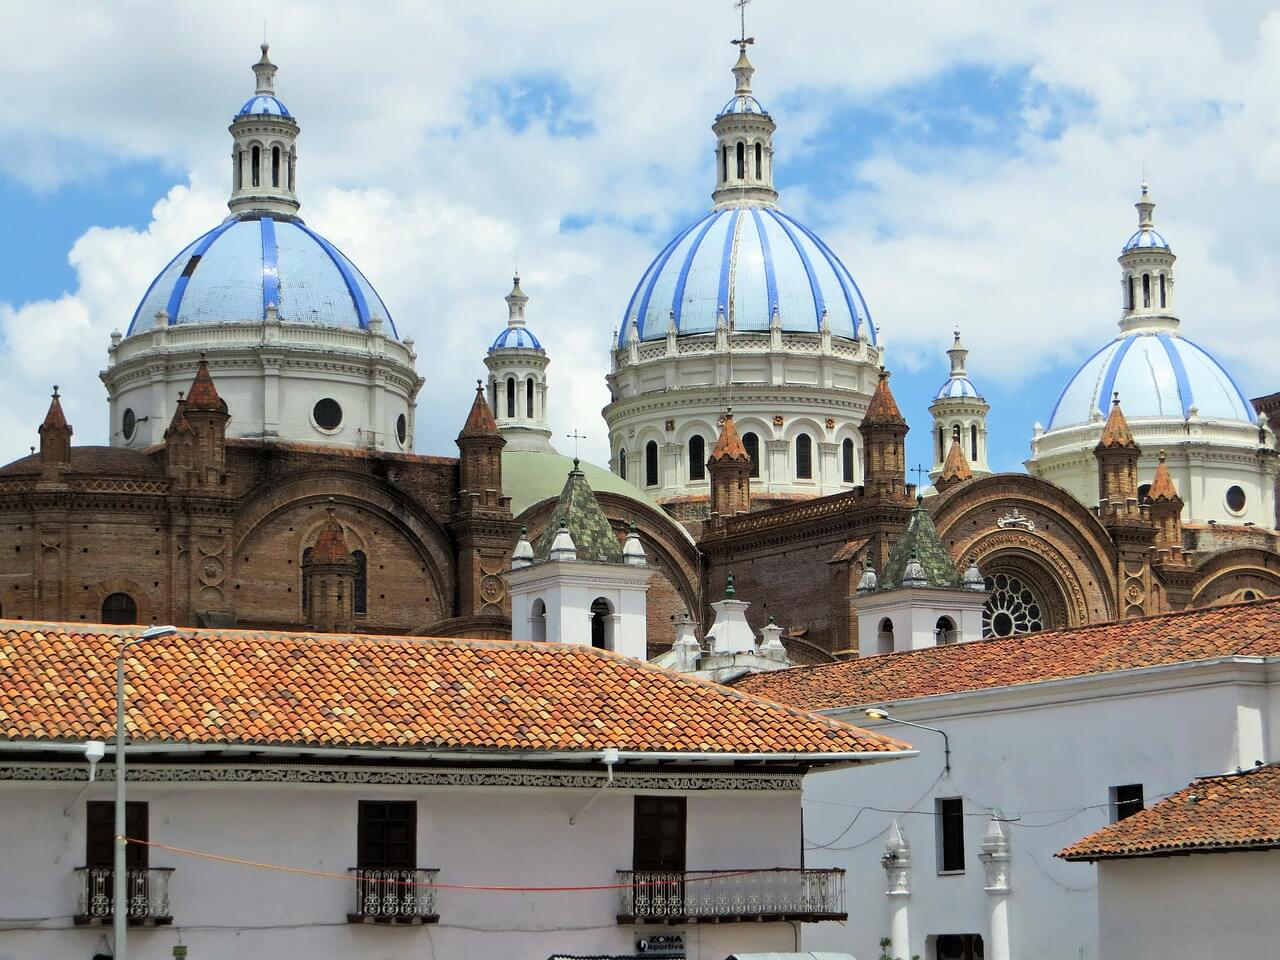 Beautiful Cuenca, Ecuador is a UNESCO world heritage site and home to many beautiful colonial buildings, like these!